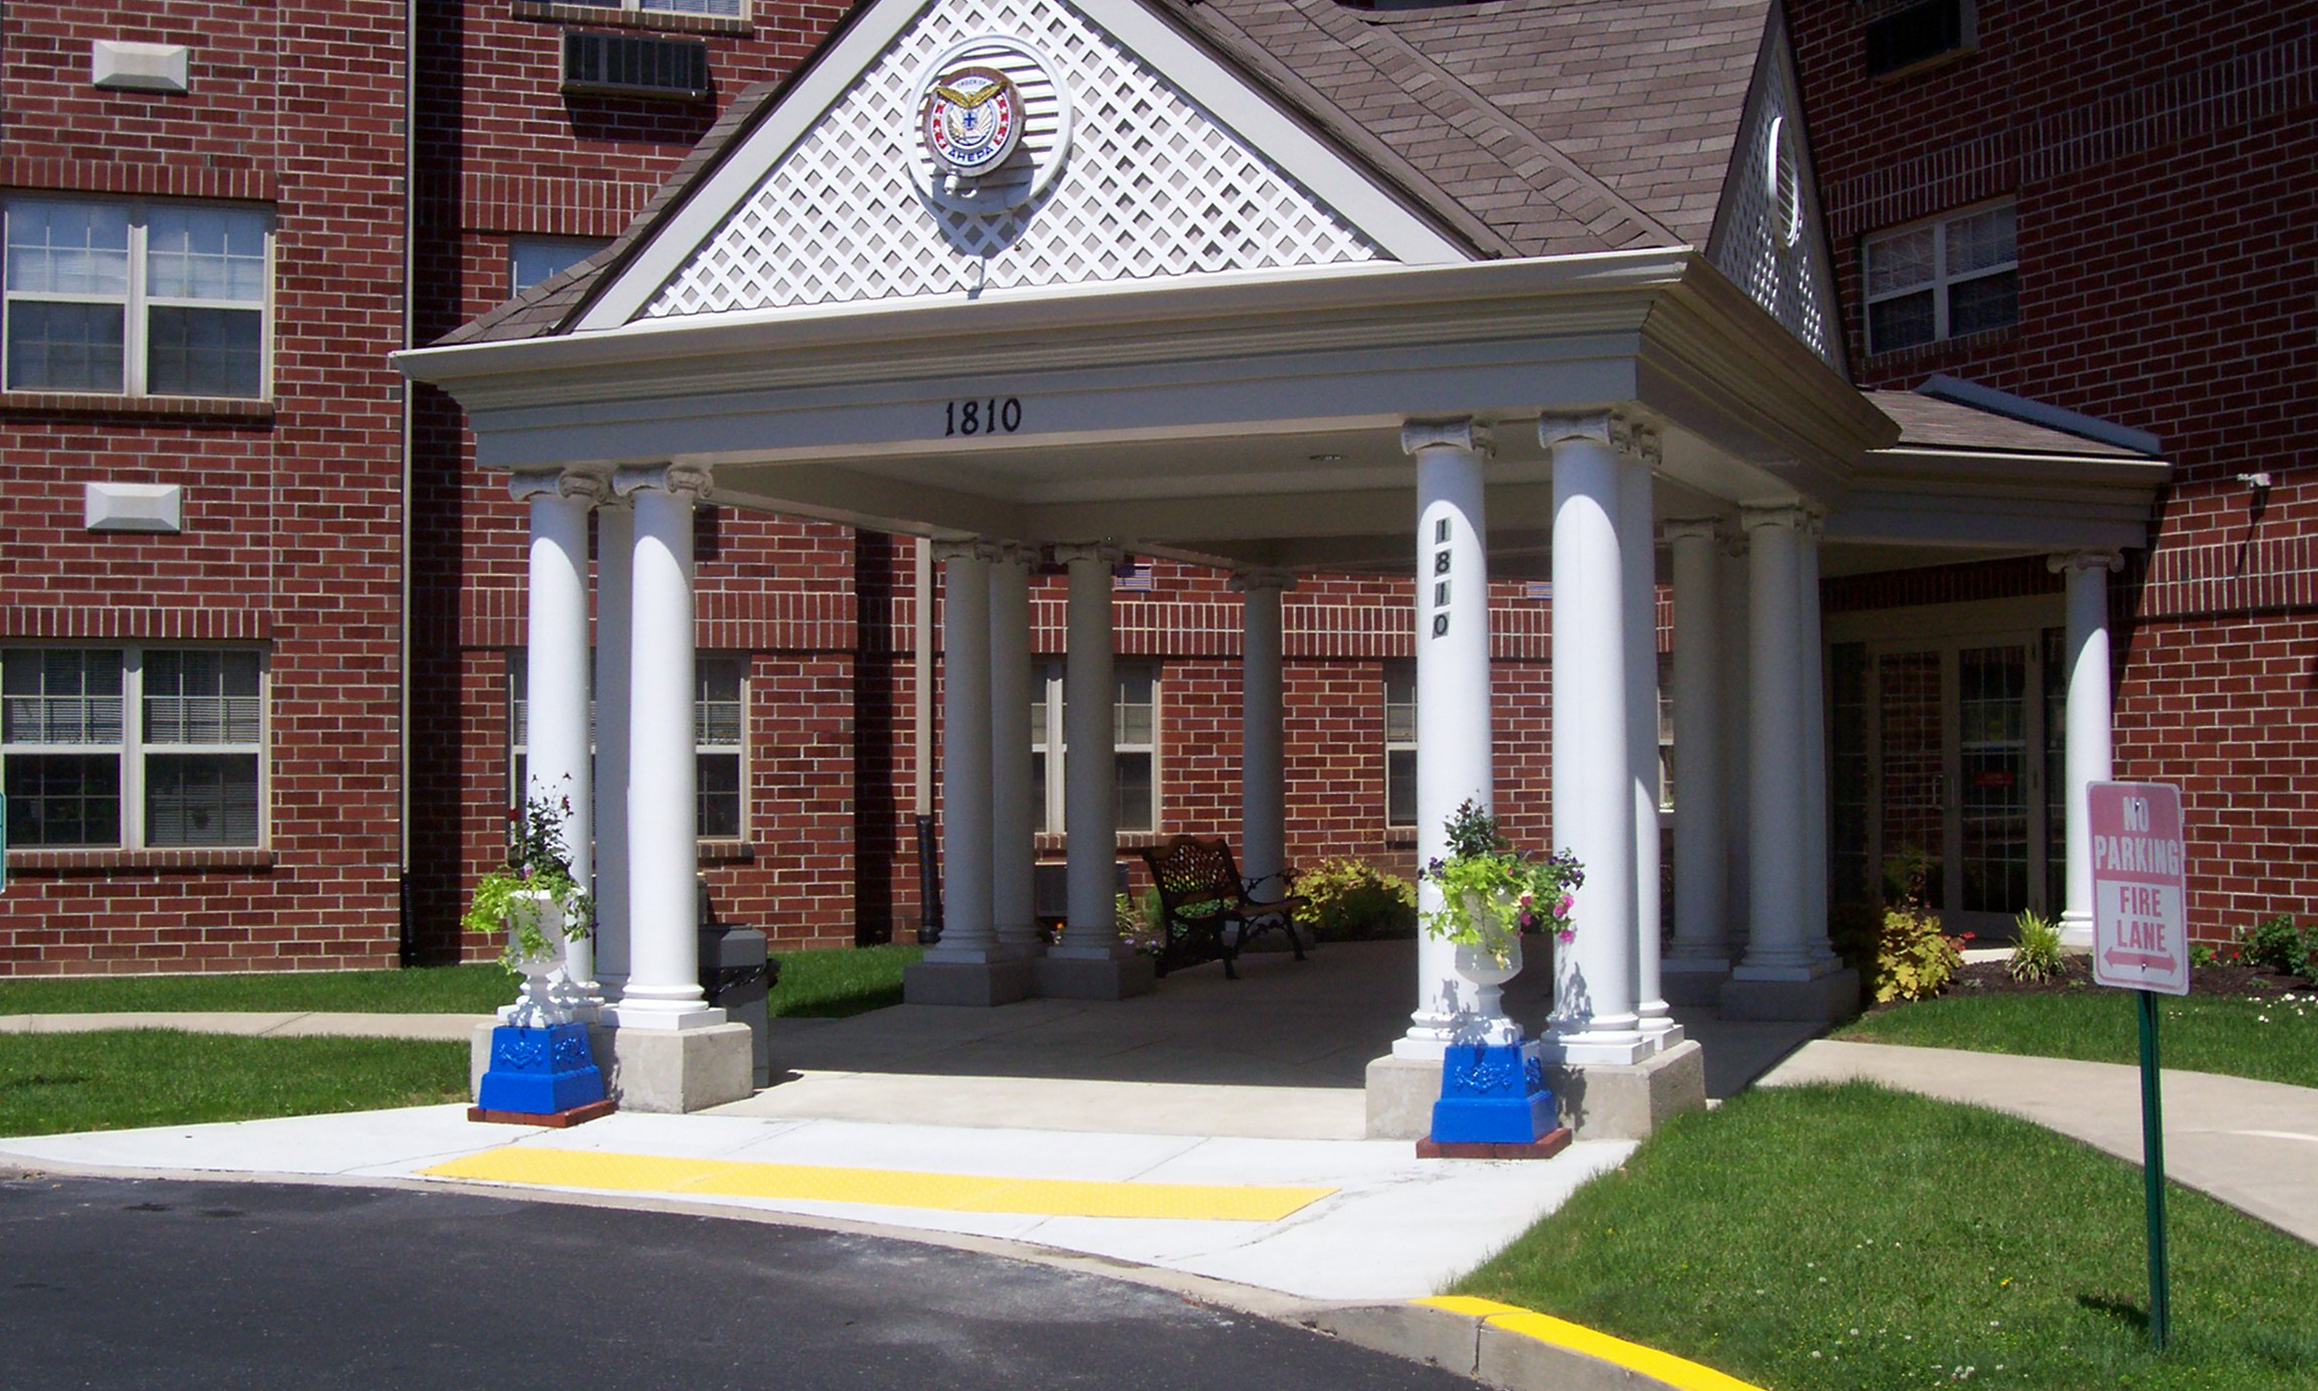 AHEPA 60 Senior Apartments - 1810 S. Albert StreetAllentown, PA 18103(610) 798-8320TTY: (800) 654-5988 or 711 (English)TTY: (844) 308-9291 or 711 (Español)info@ahepahousing.org